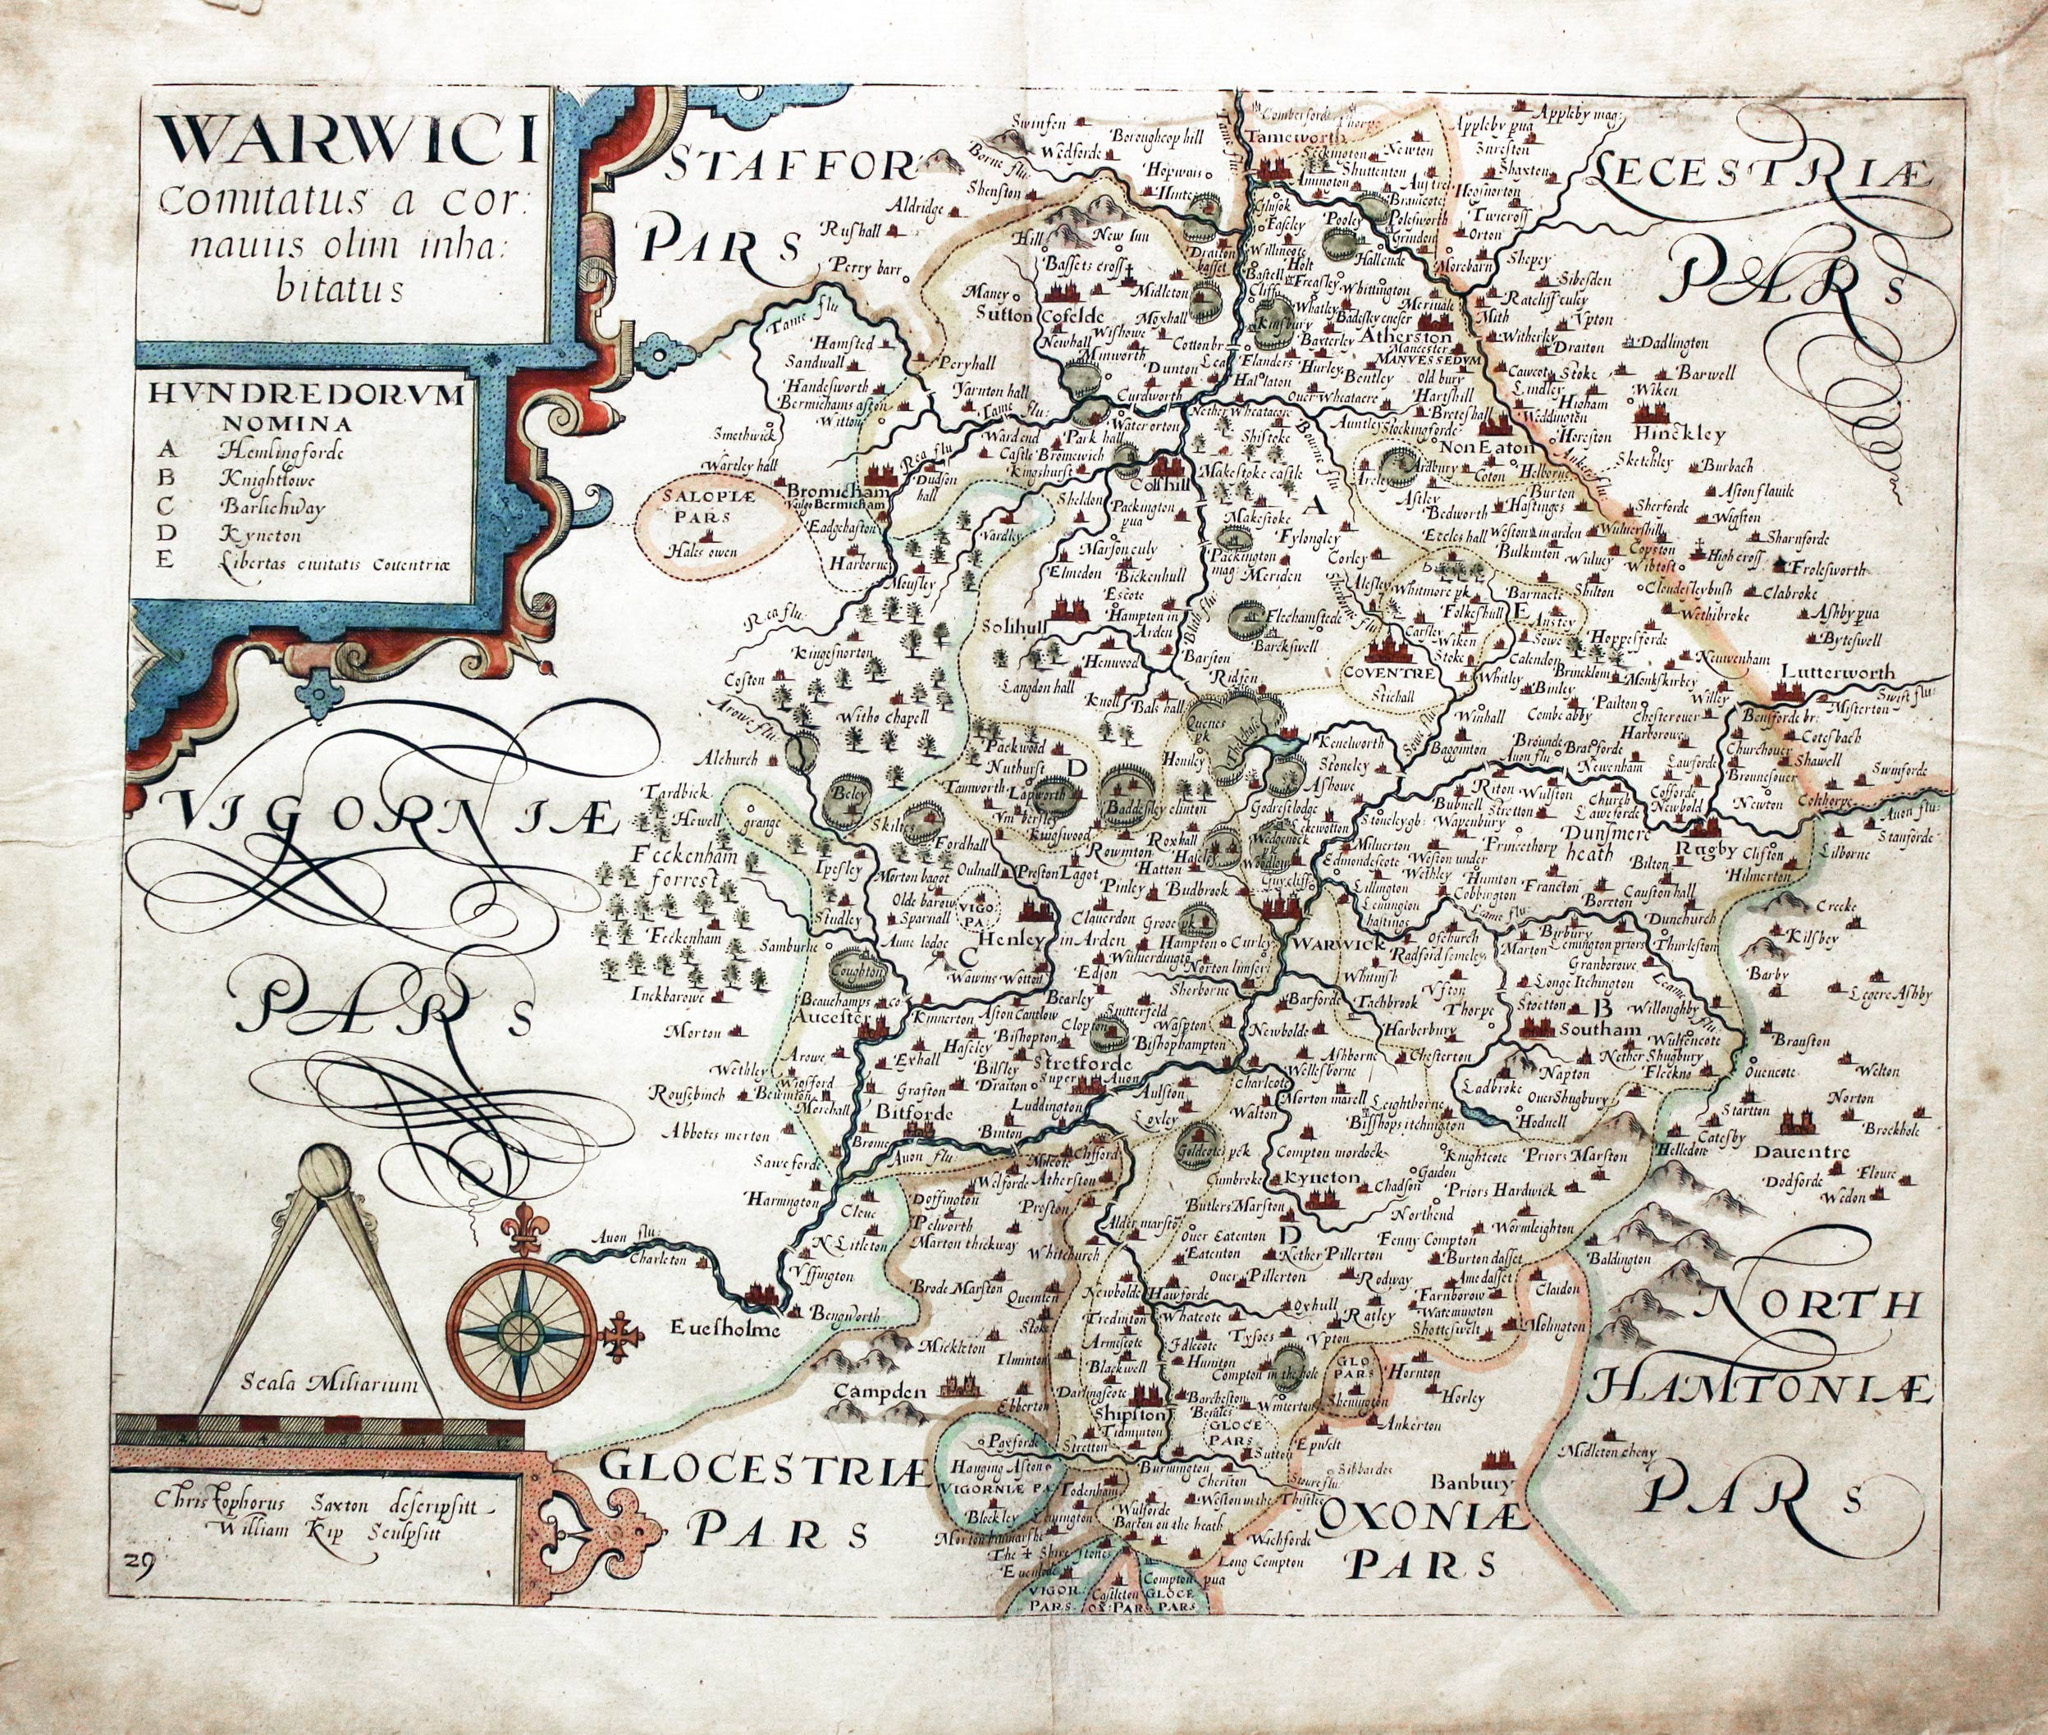 Map of Warwickshire in 1610